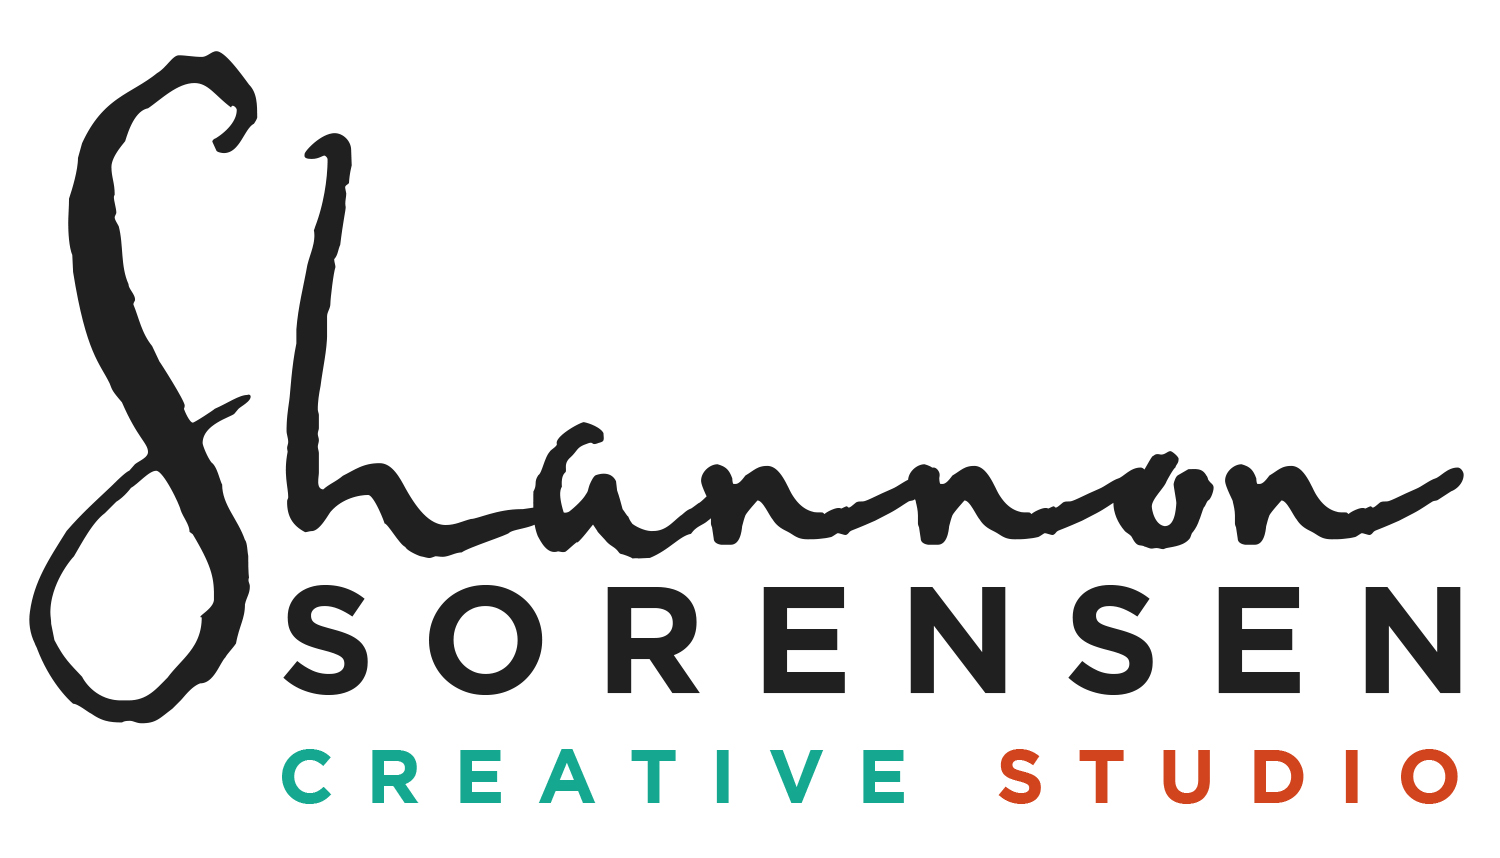 Shannon Sorensen Creative Studio Photography Design and Branding Services